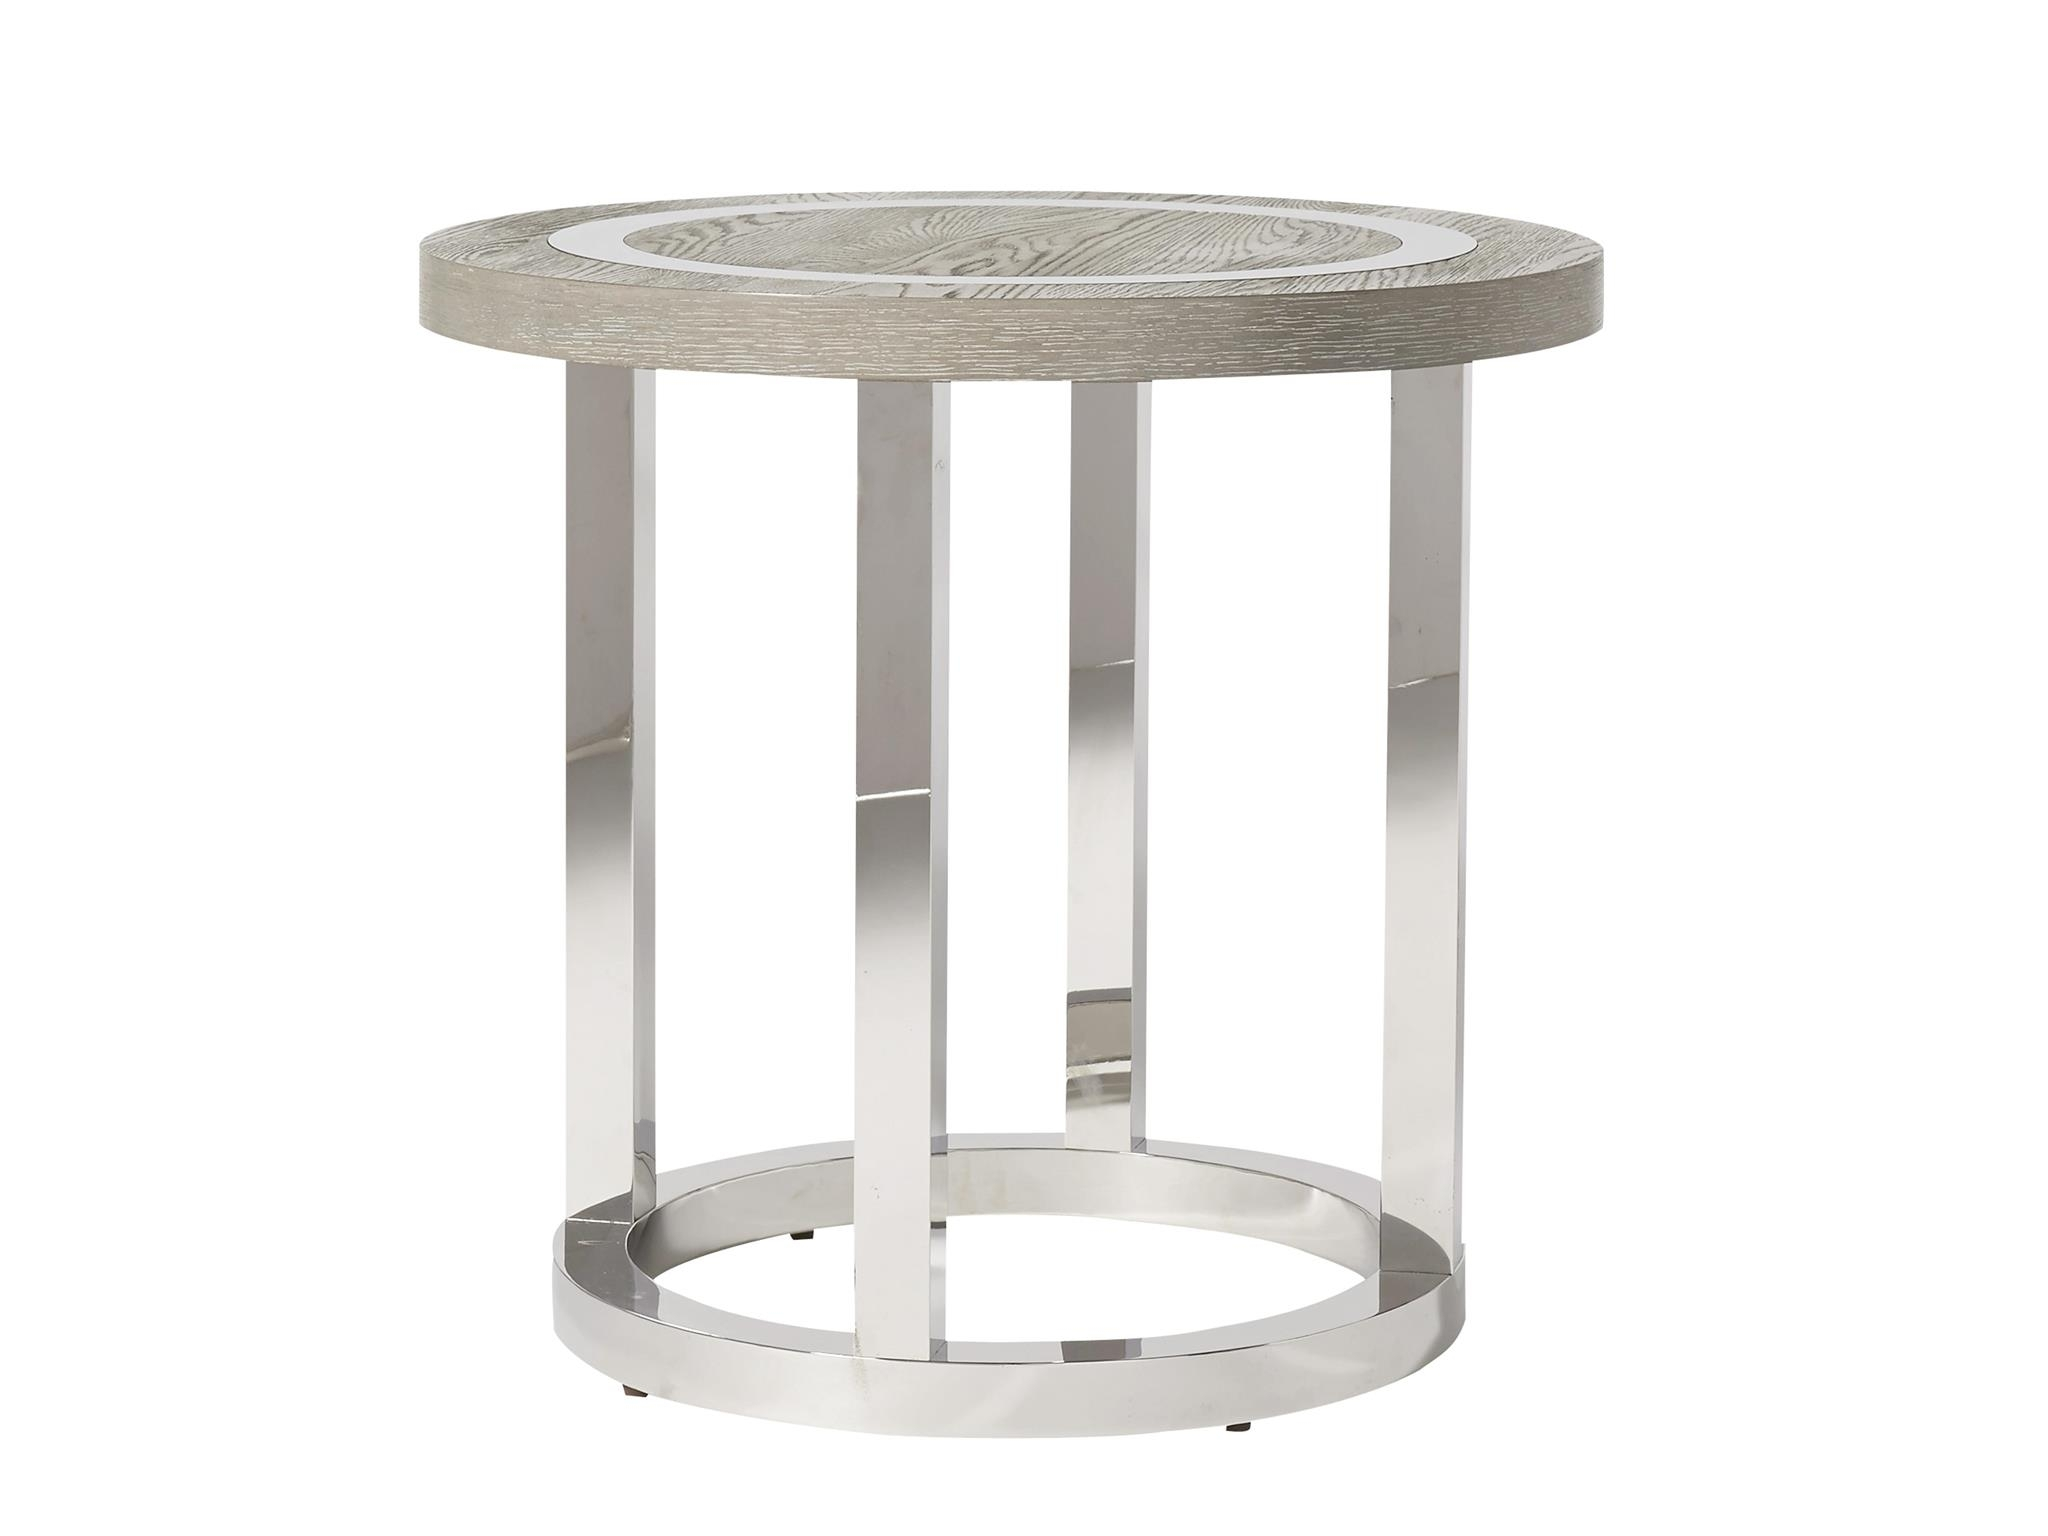 Universal Furniture | Modern | Wyatt Round End Table intended for Wyatt Sideboards (Image 16 of 30)